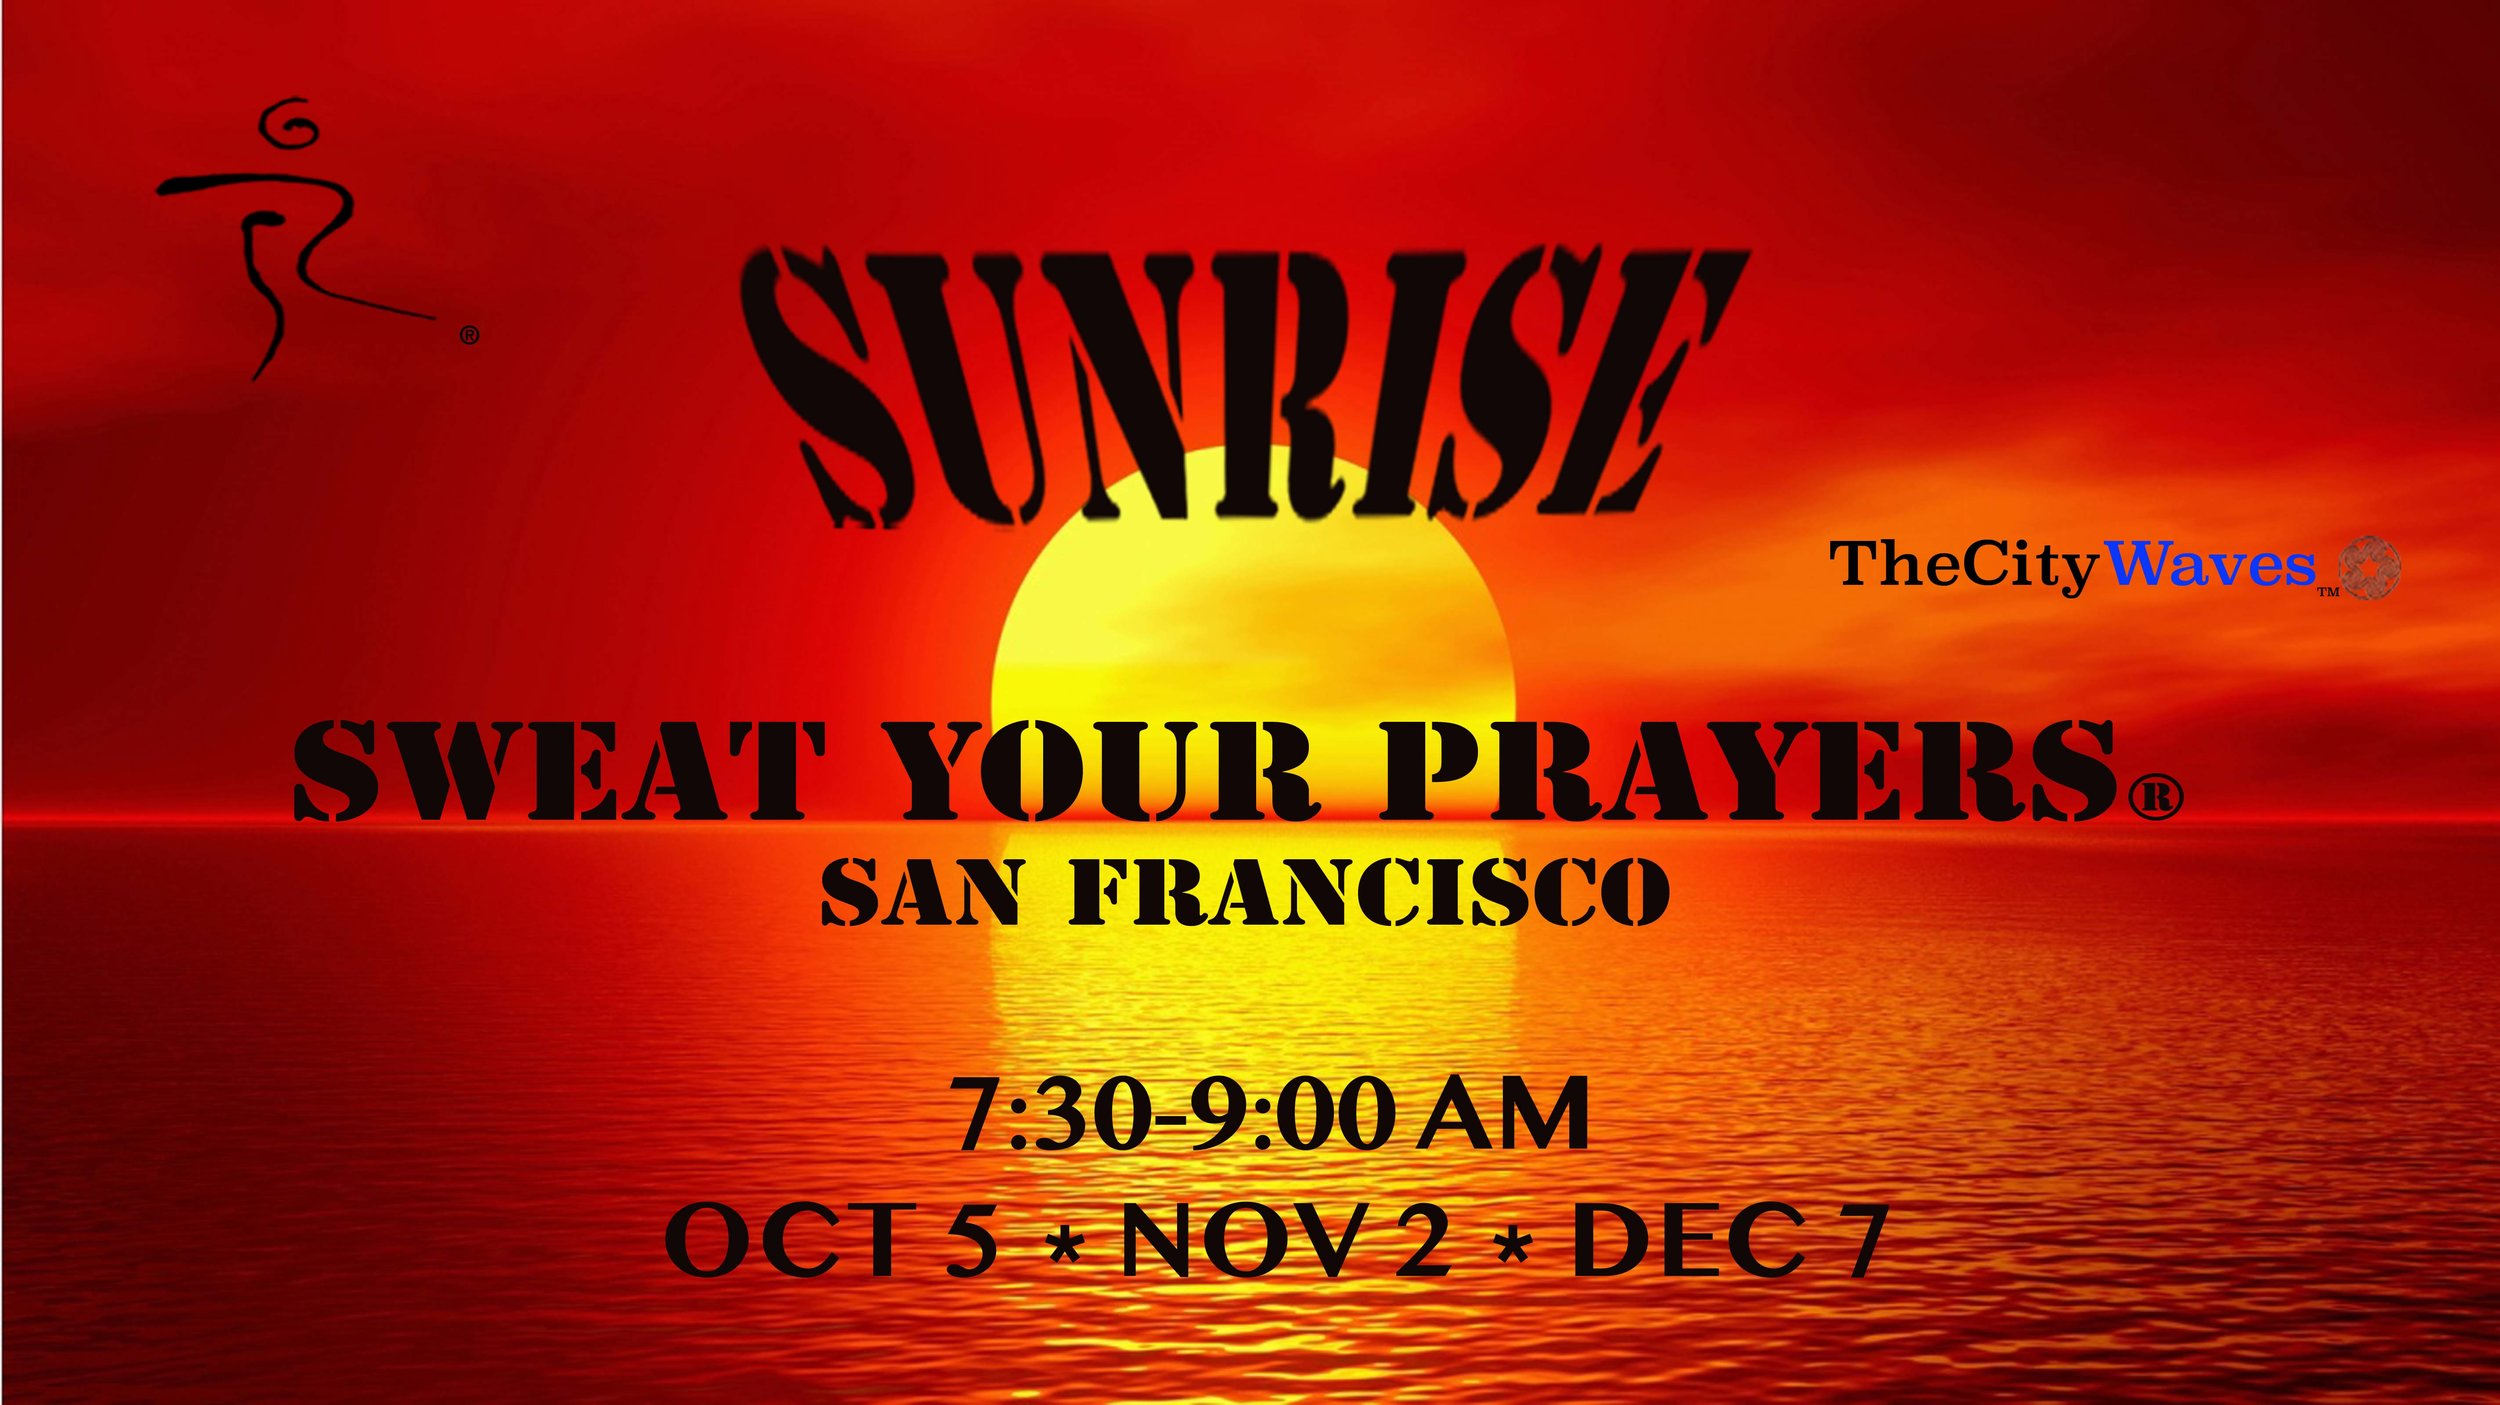 Sunrise SYP Oct Nov Dec 2018.jpg